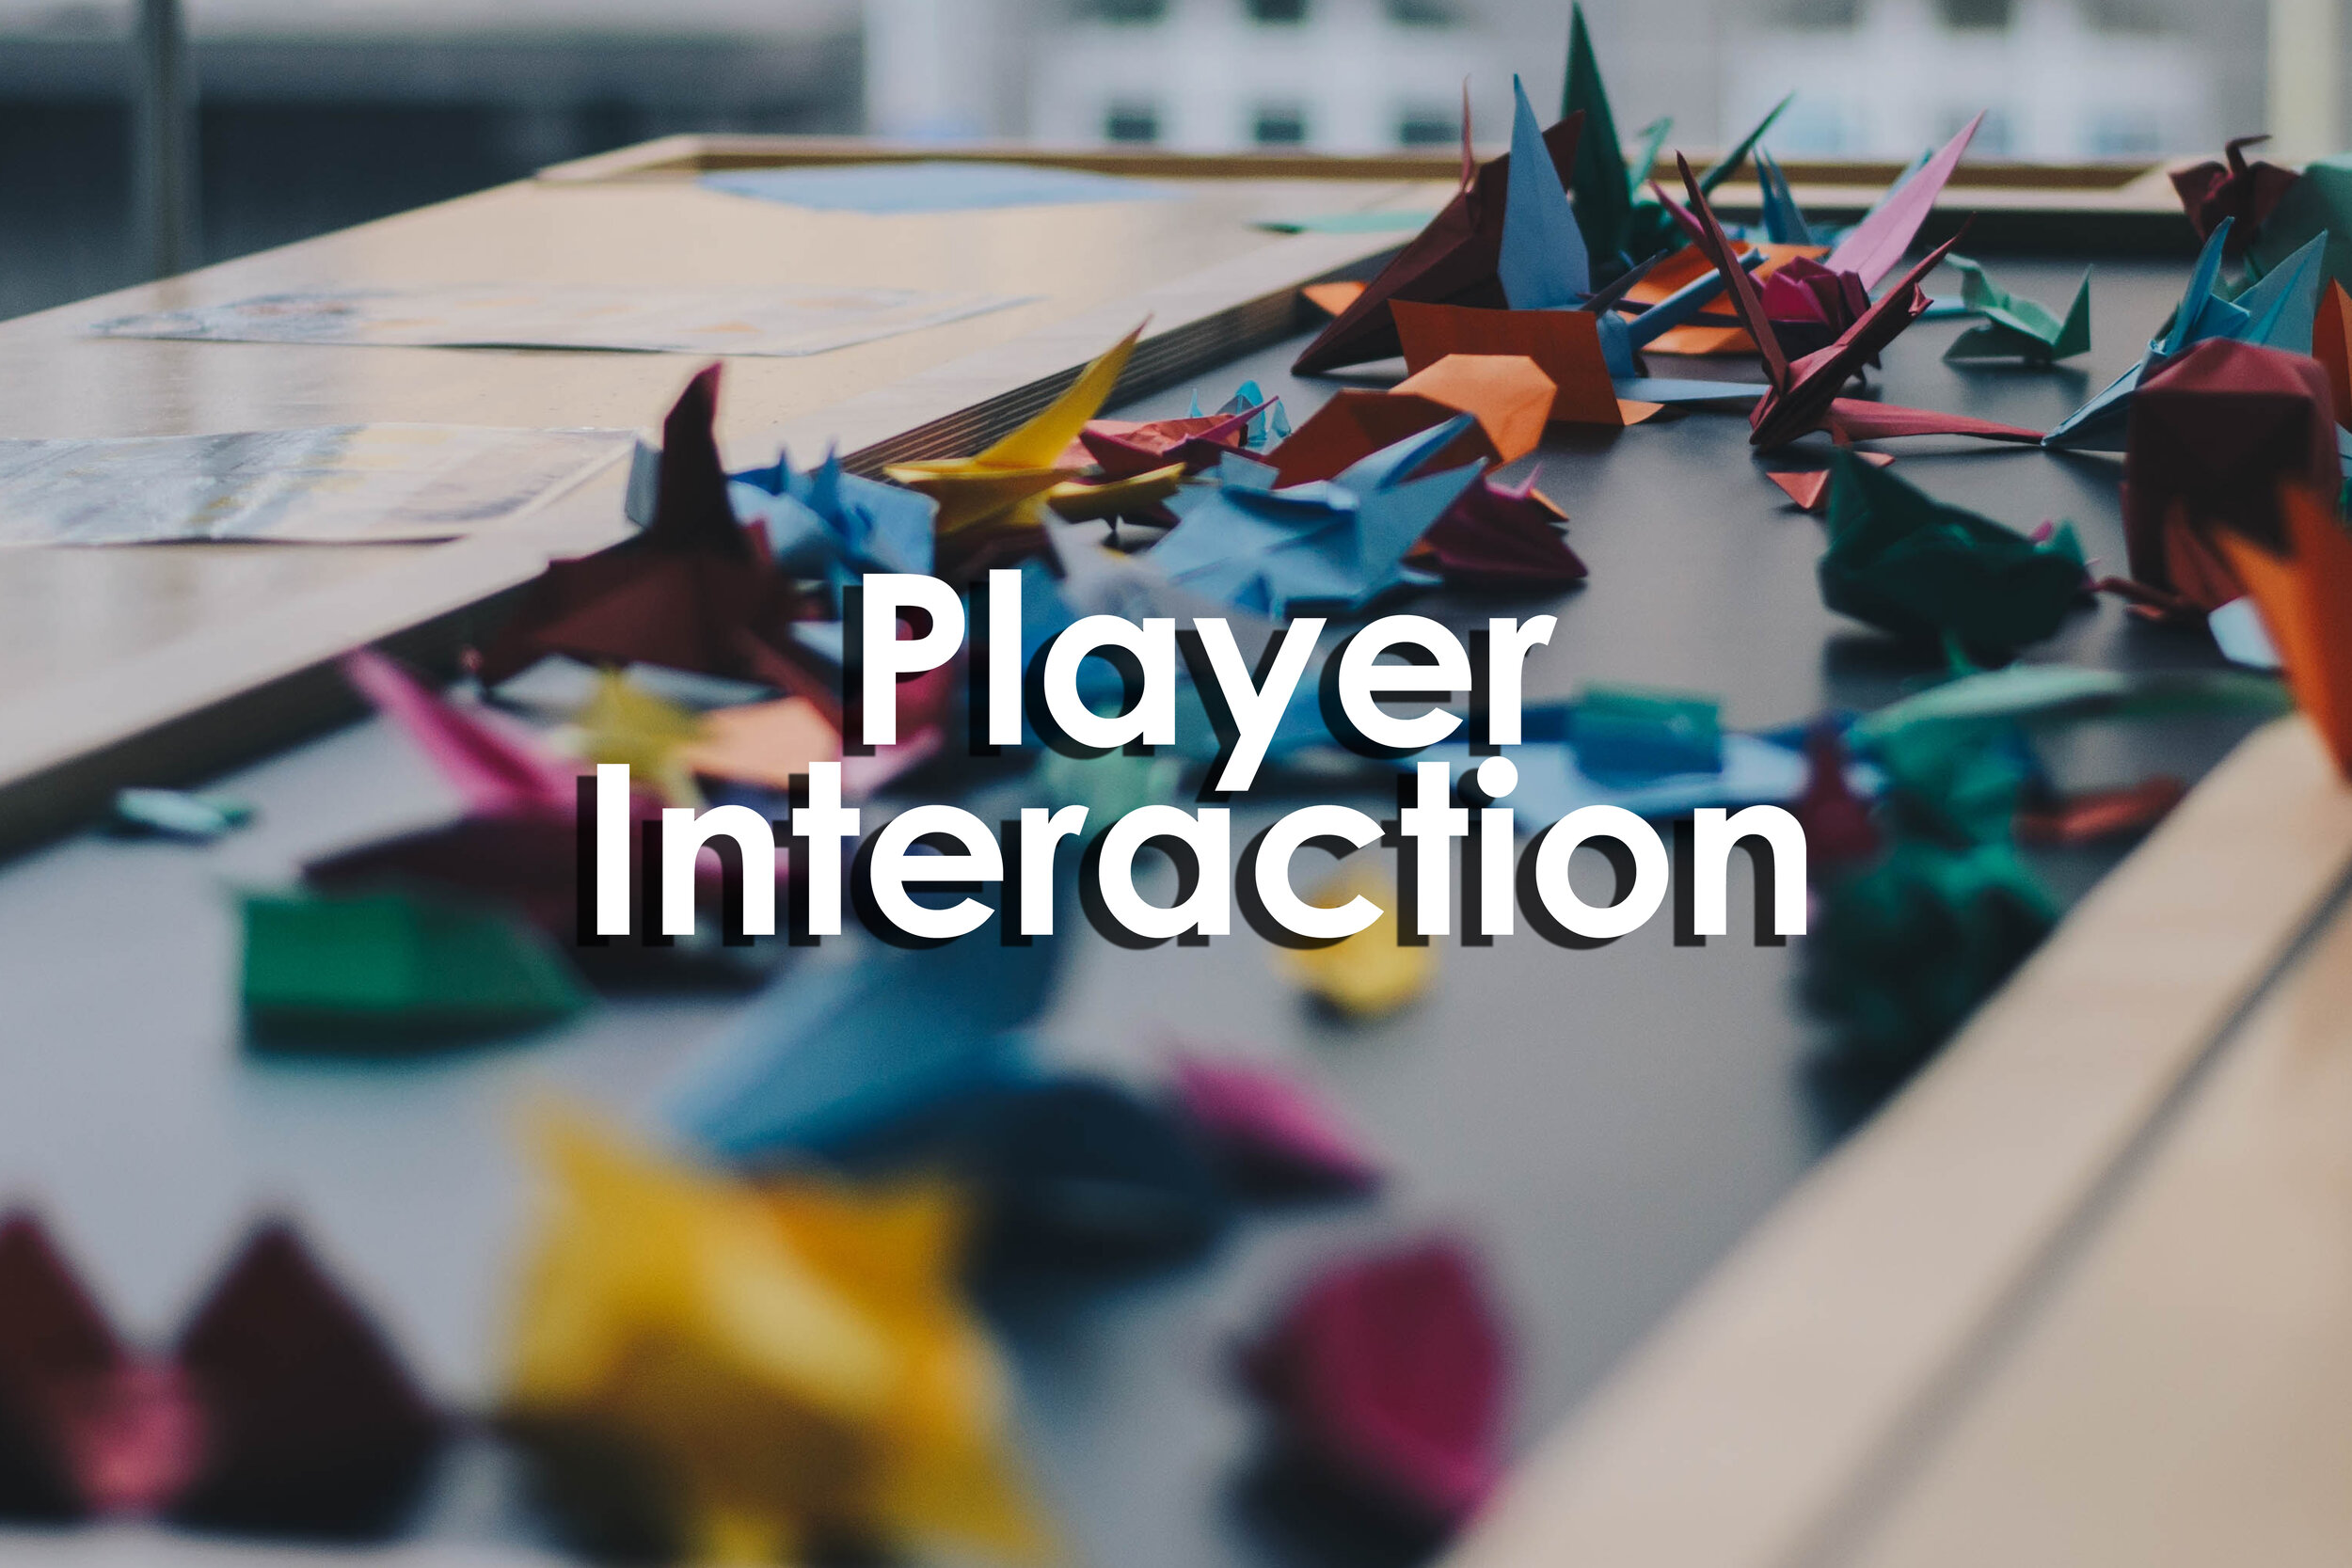 Player Interaction